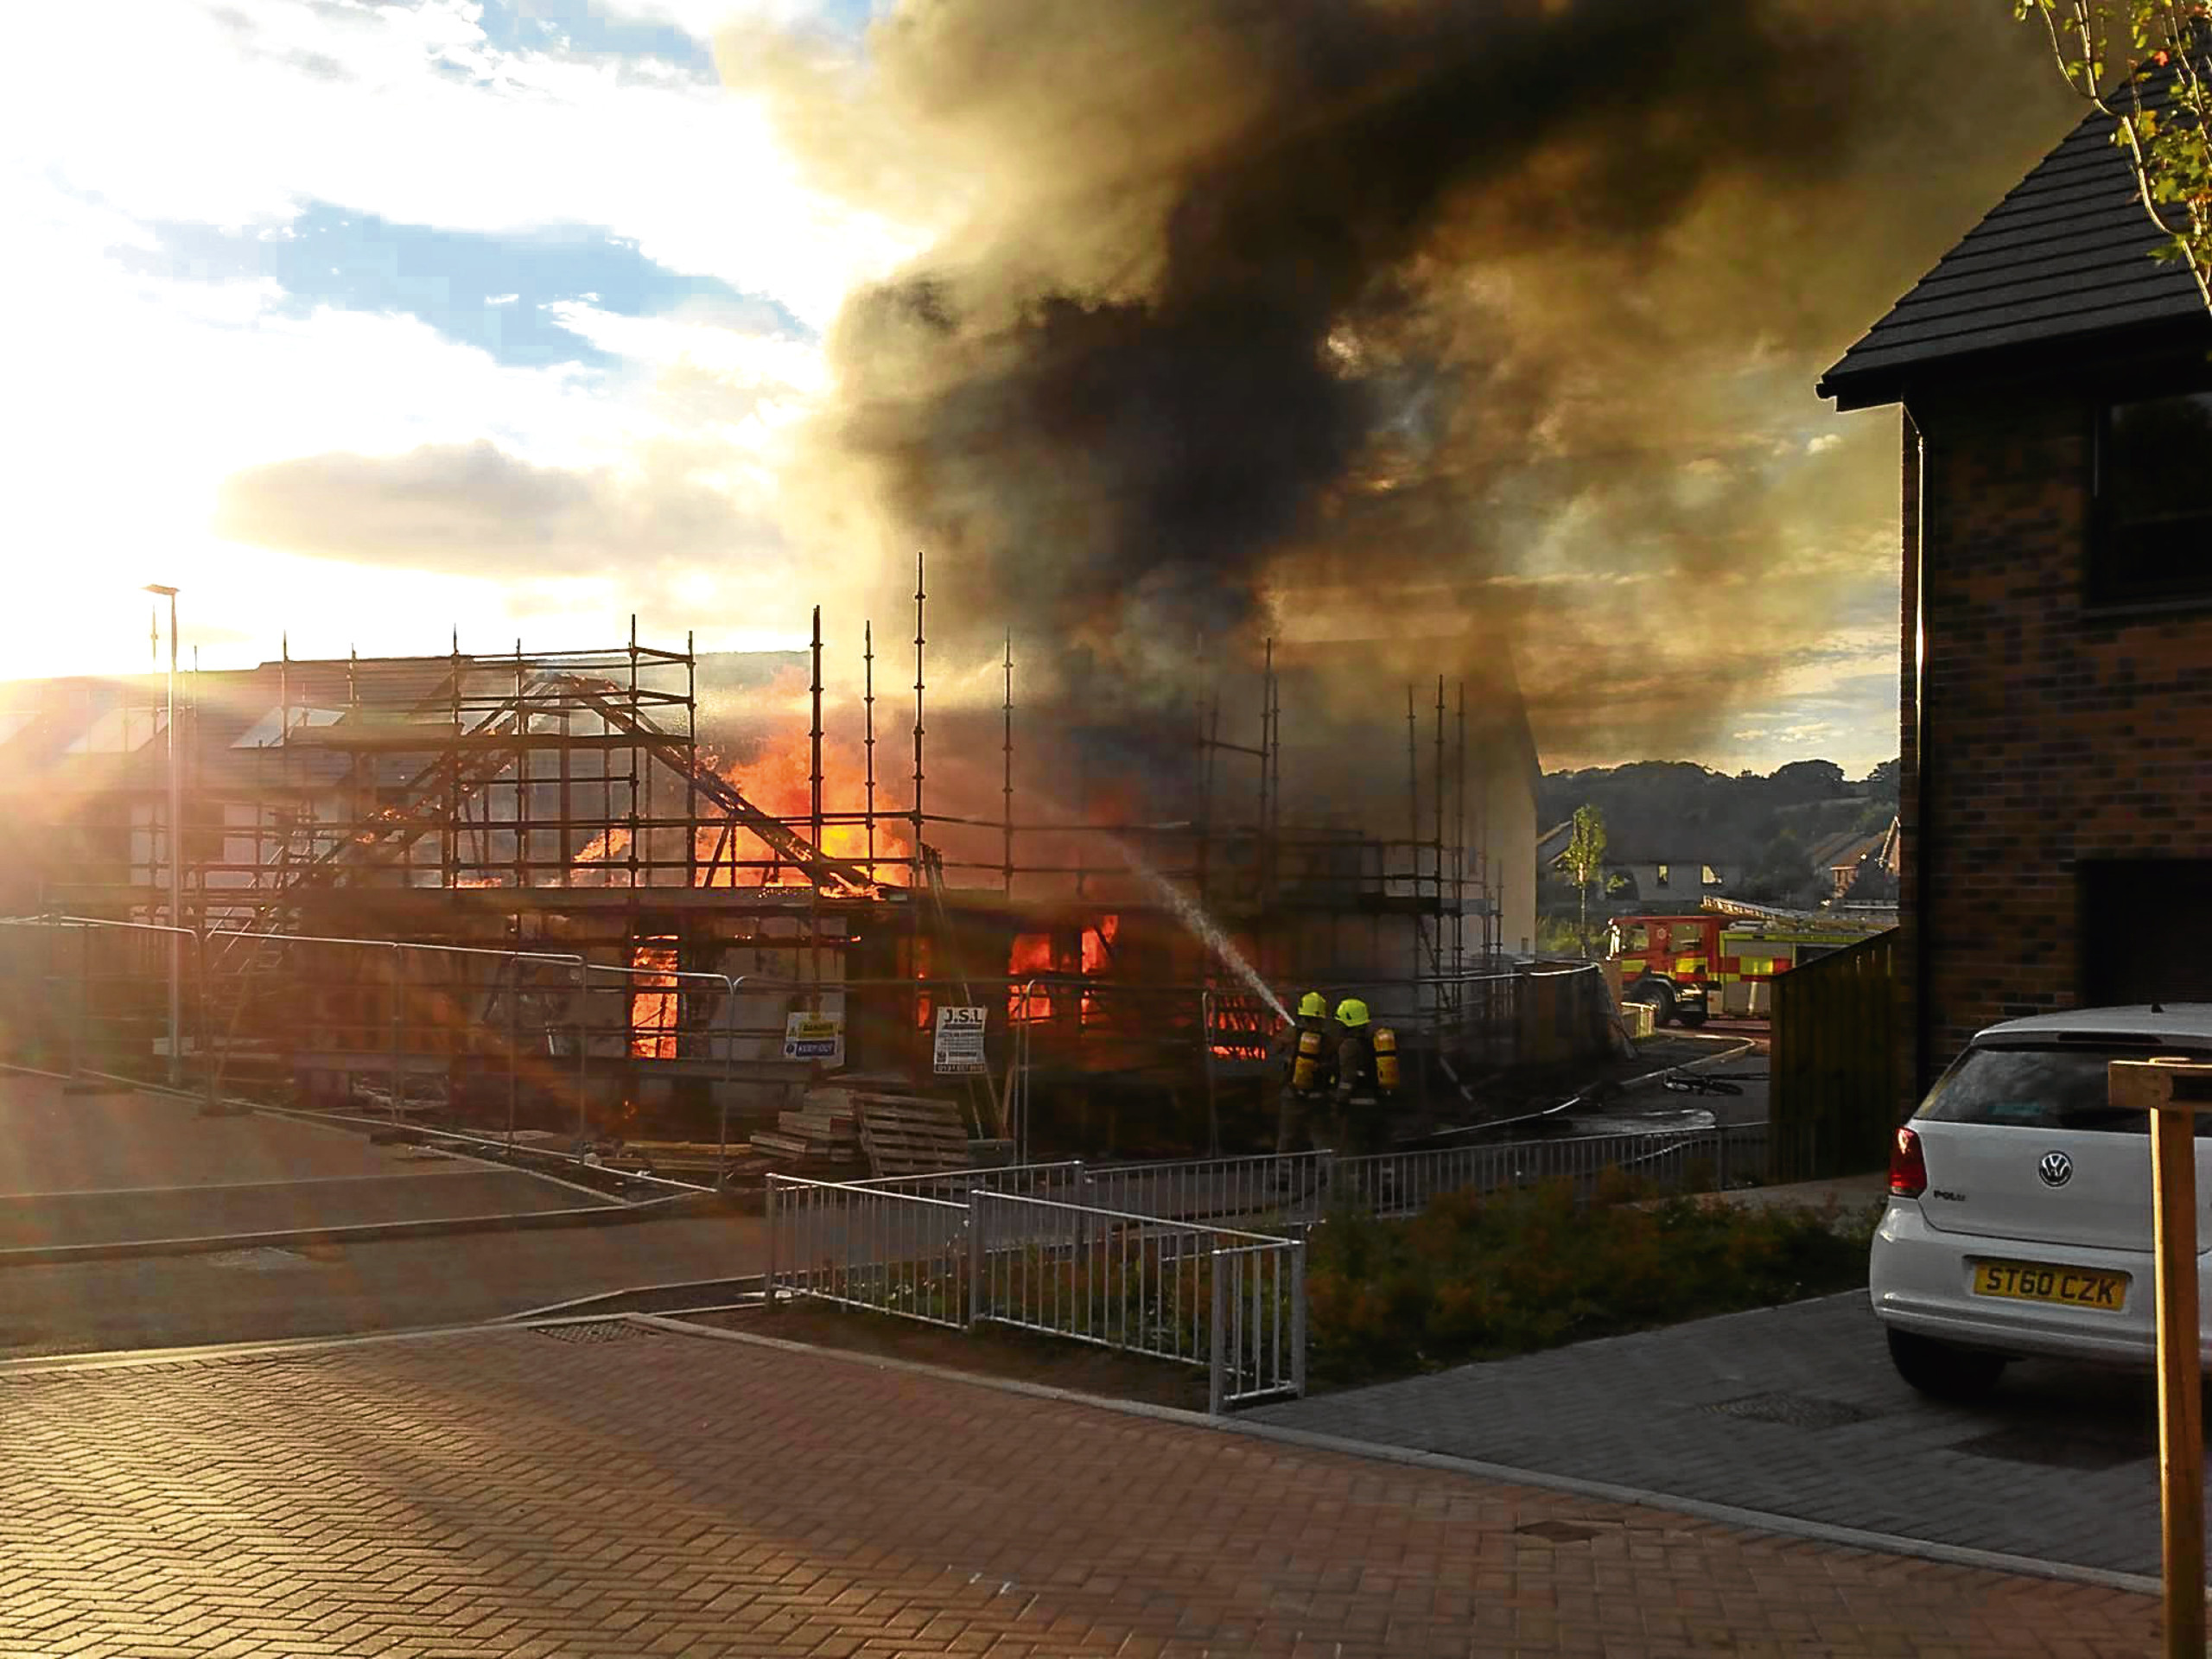 Mill O'Mains fire pic by Alison Duncan